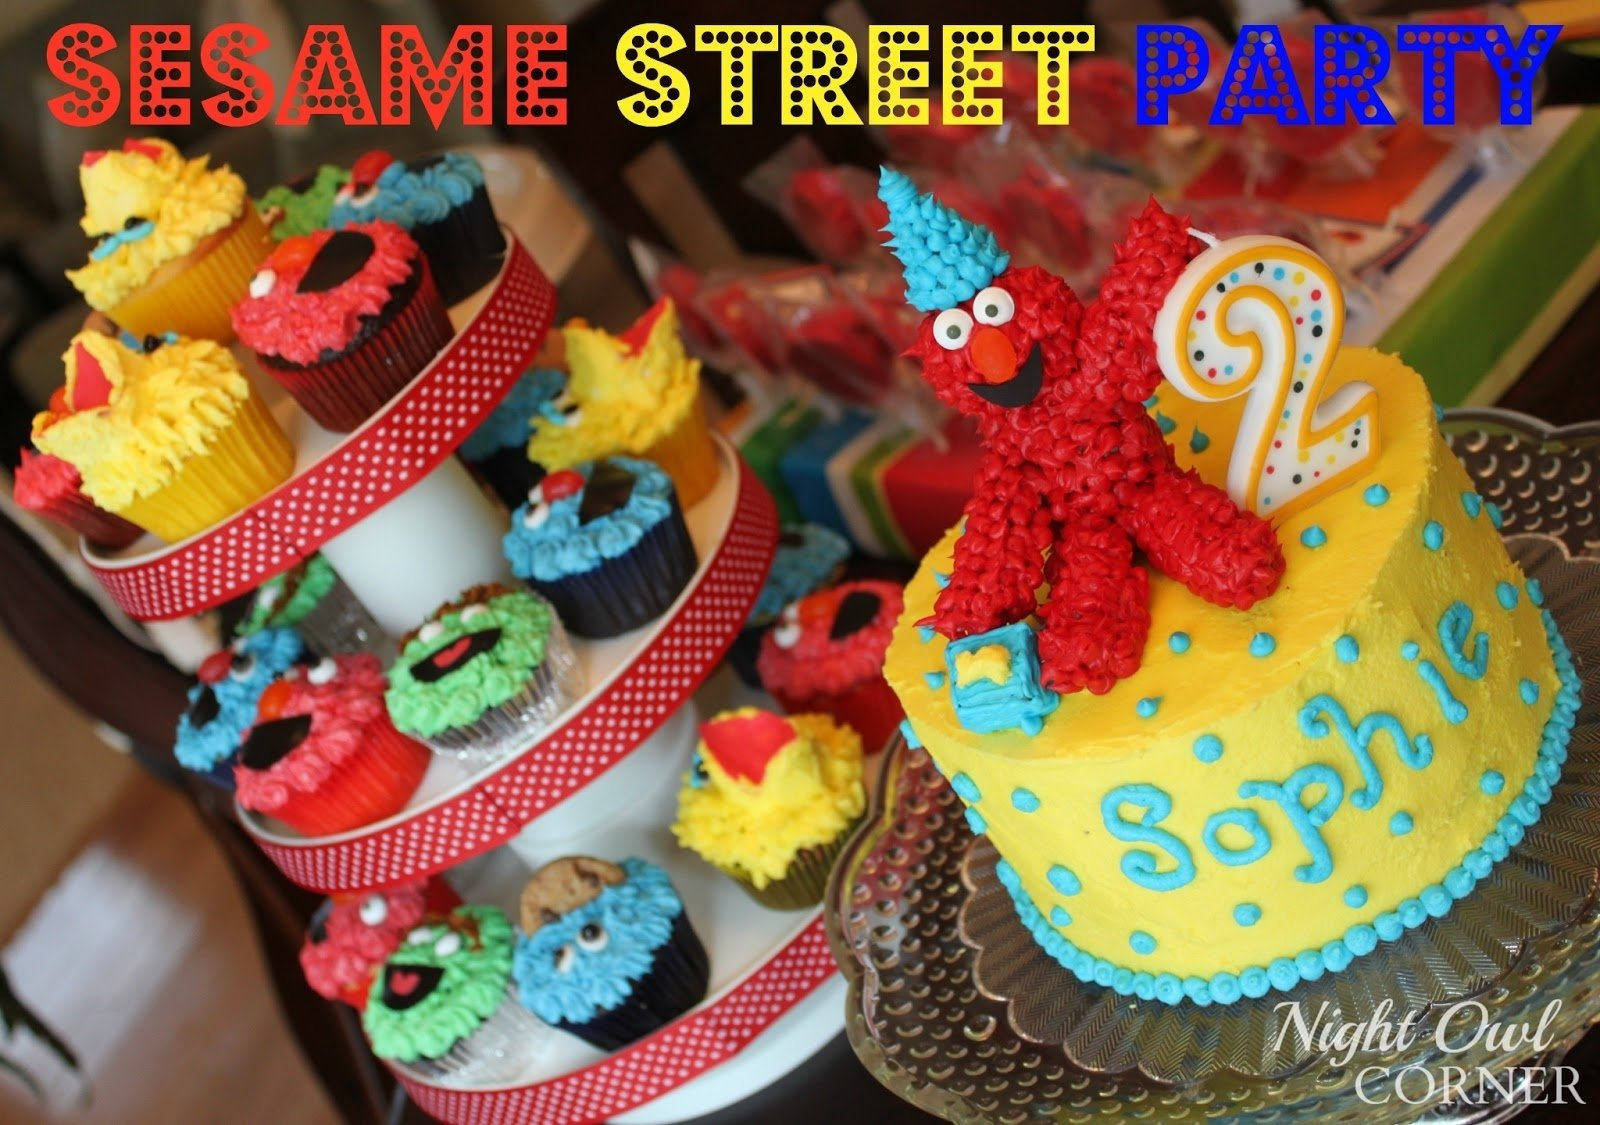 10 Lovely Sesame Street Party Ideas Decorations night owl corner sesame street birthday party 2020